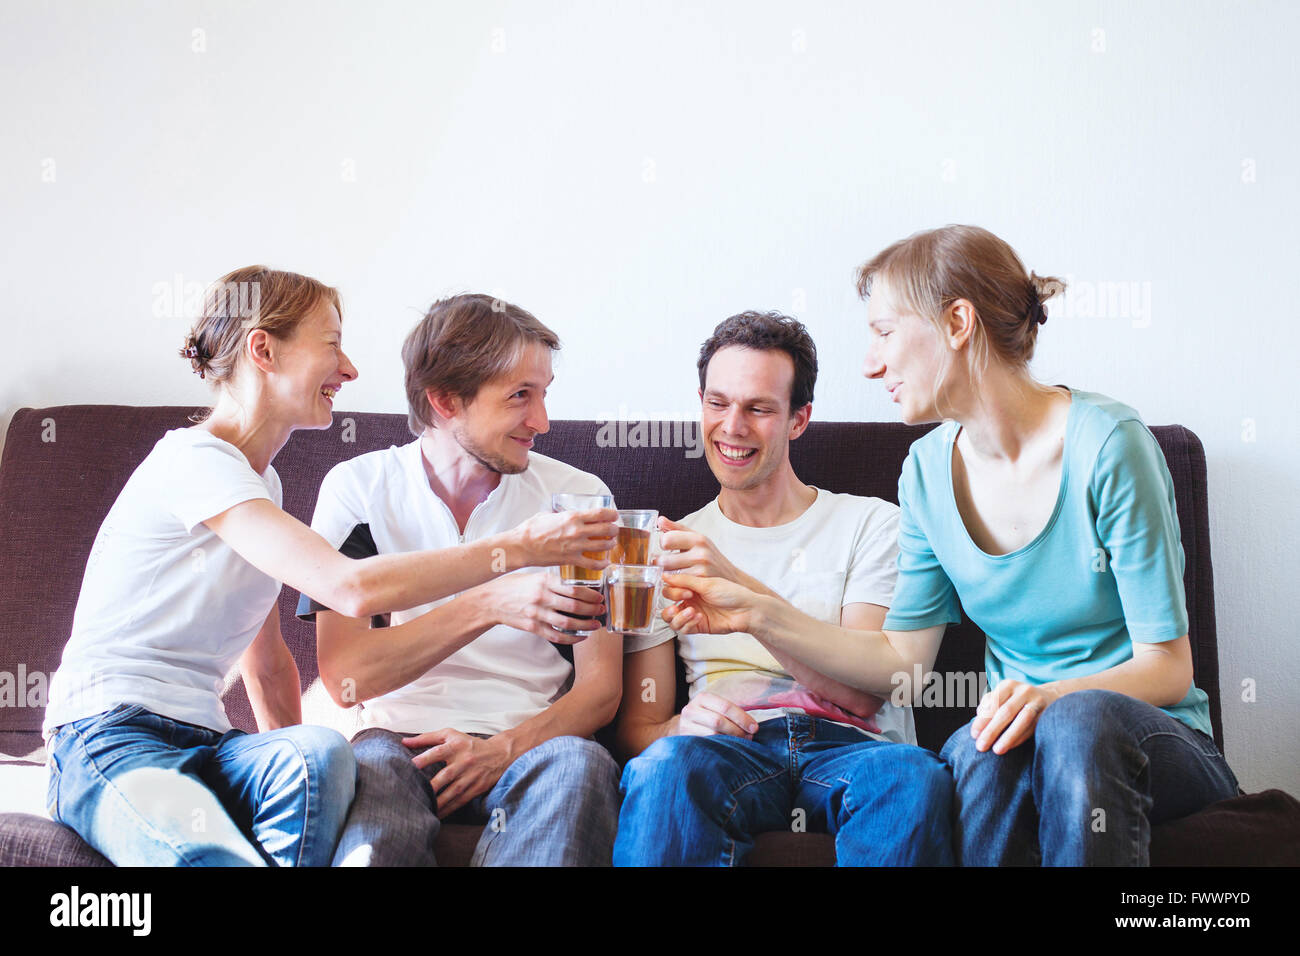 group of friends cheering at home, happy young smiling people with drinks, copyspace - Stock Image